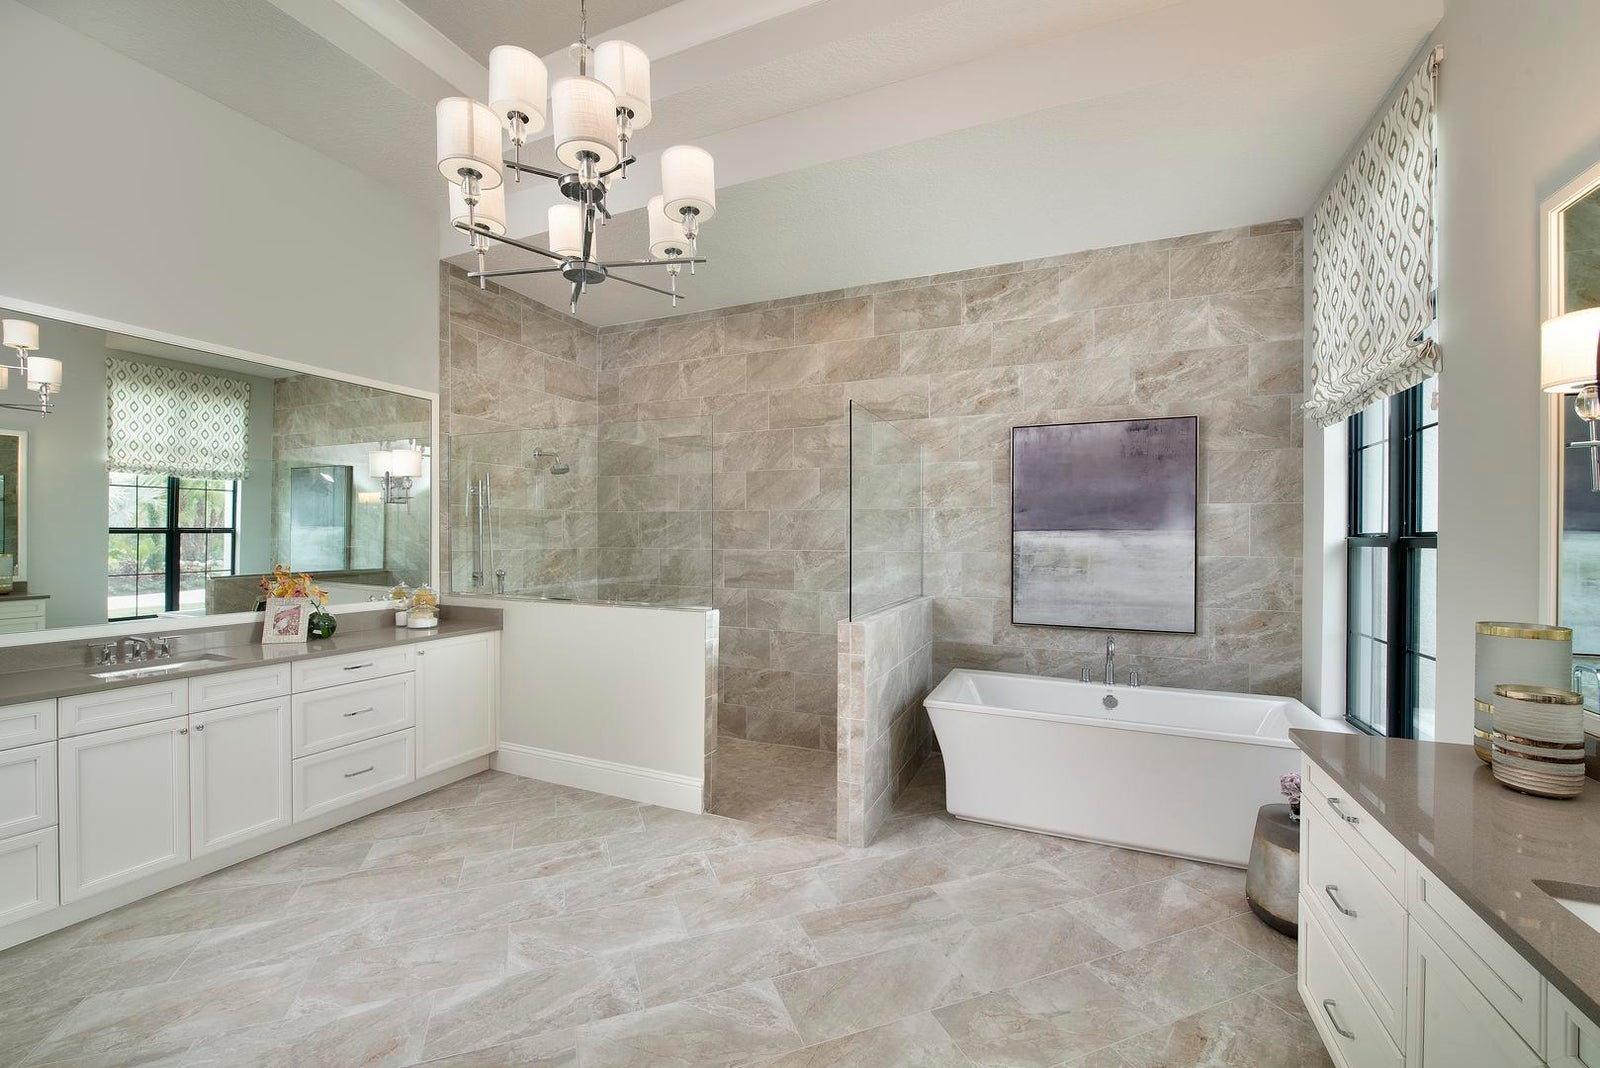 The Master Bathroom of The Clairborne II by STOCK Signature Homes at The Concession Bradenton Florida